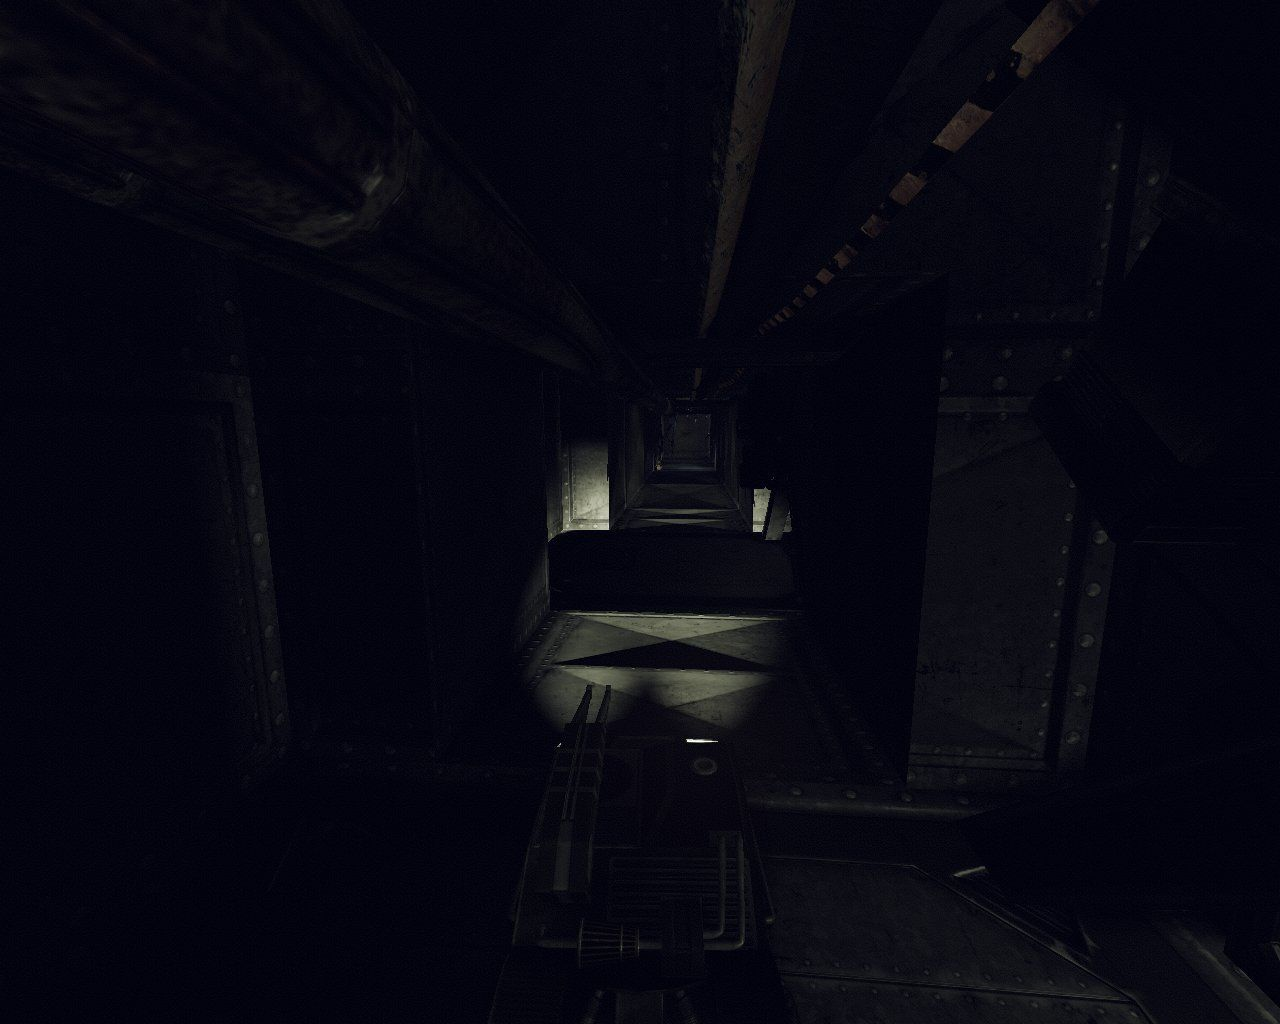 Afterfall: InSanity Windows This short section provides some alternate gameplay: You navigate a remote controlled repair robot through some ventilation shafts.